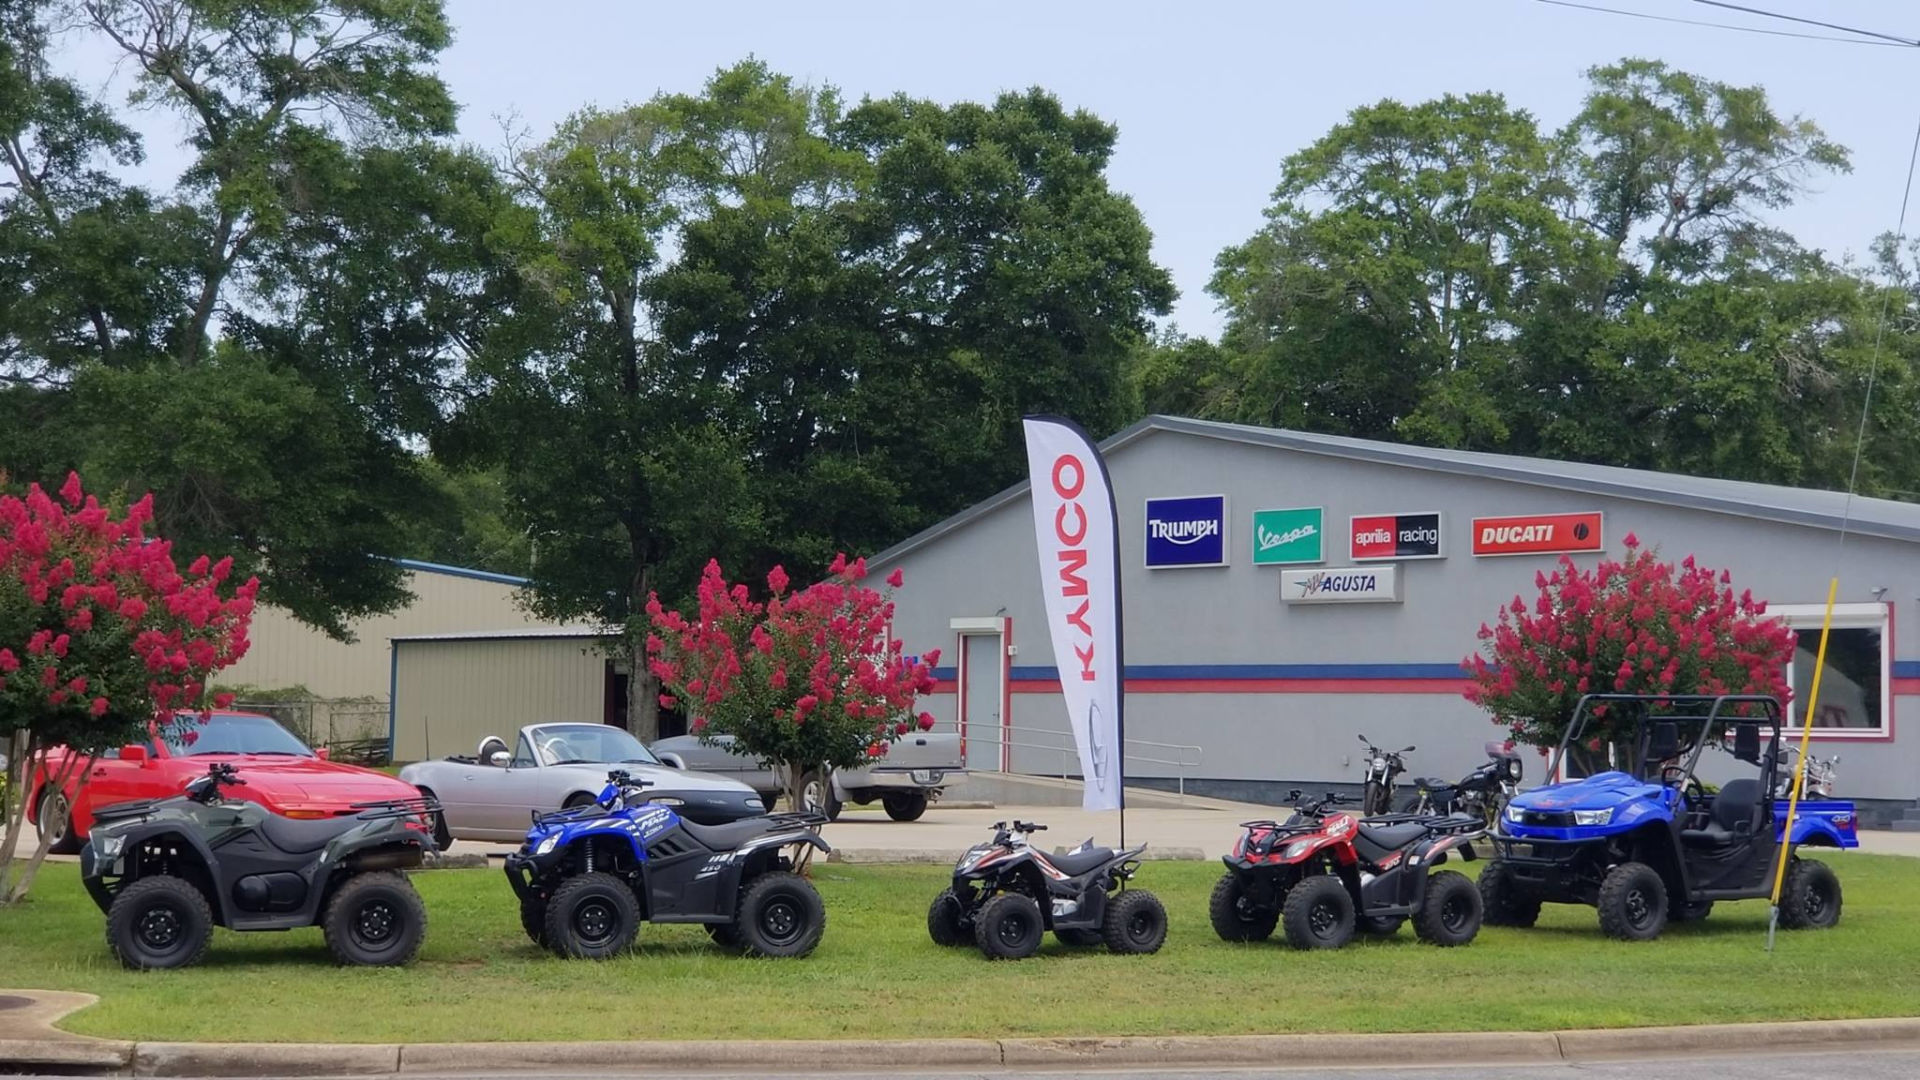 D&D Cycles, a multi-line powersports dealership located in Pensacola, Florida. Photo courtesy D&D Cycles.